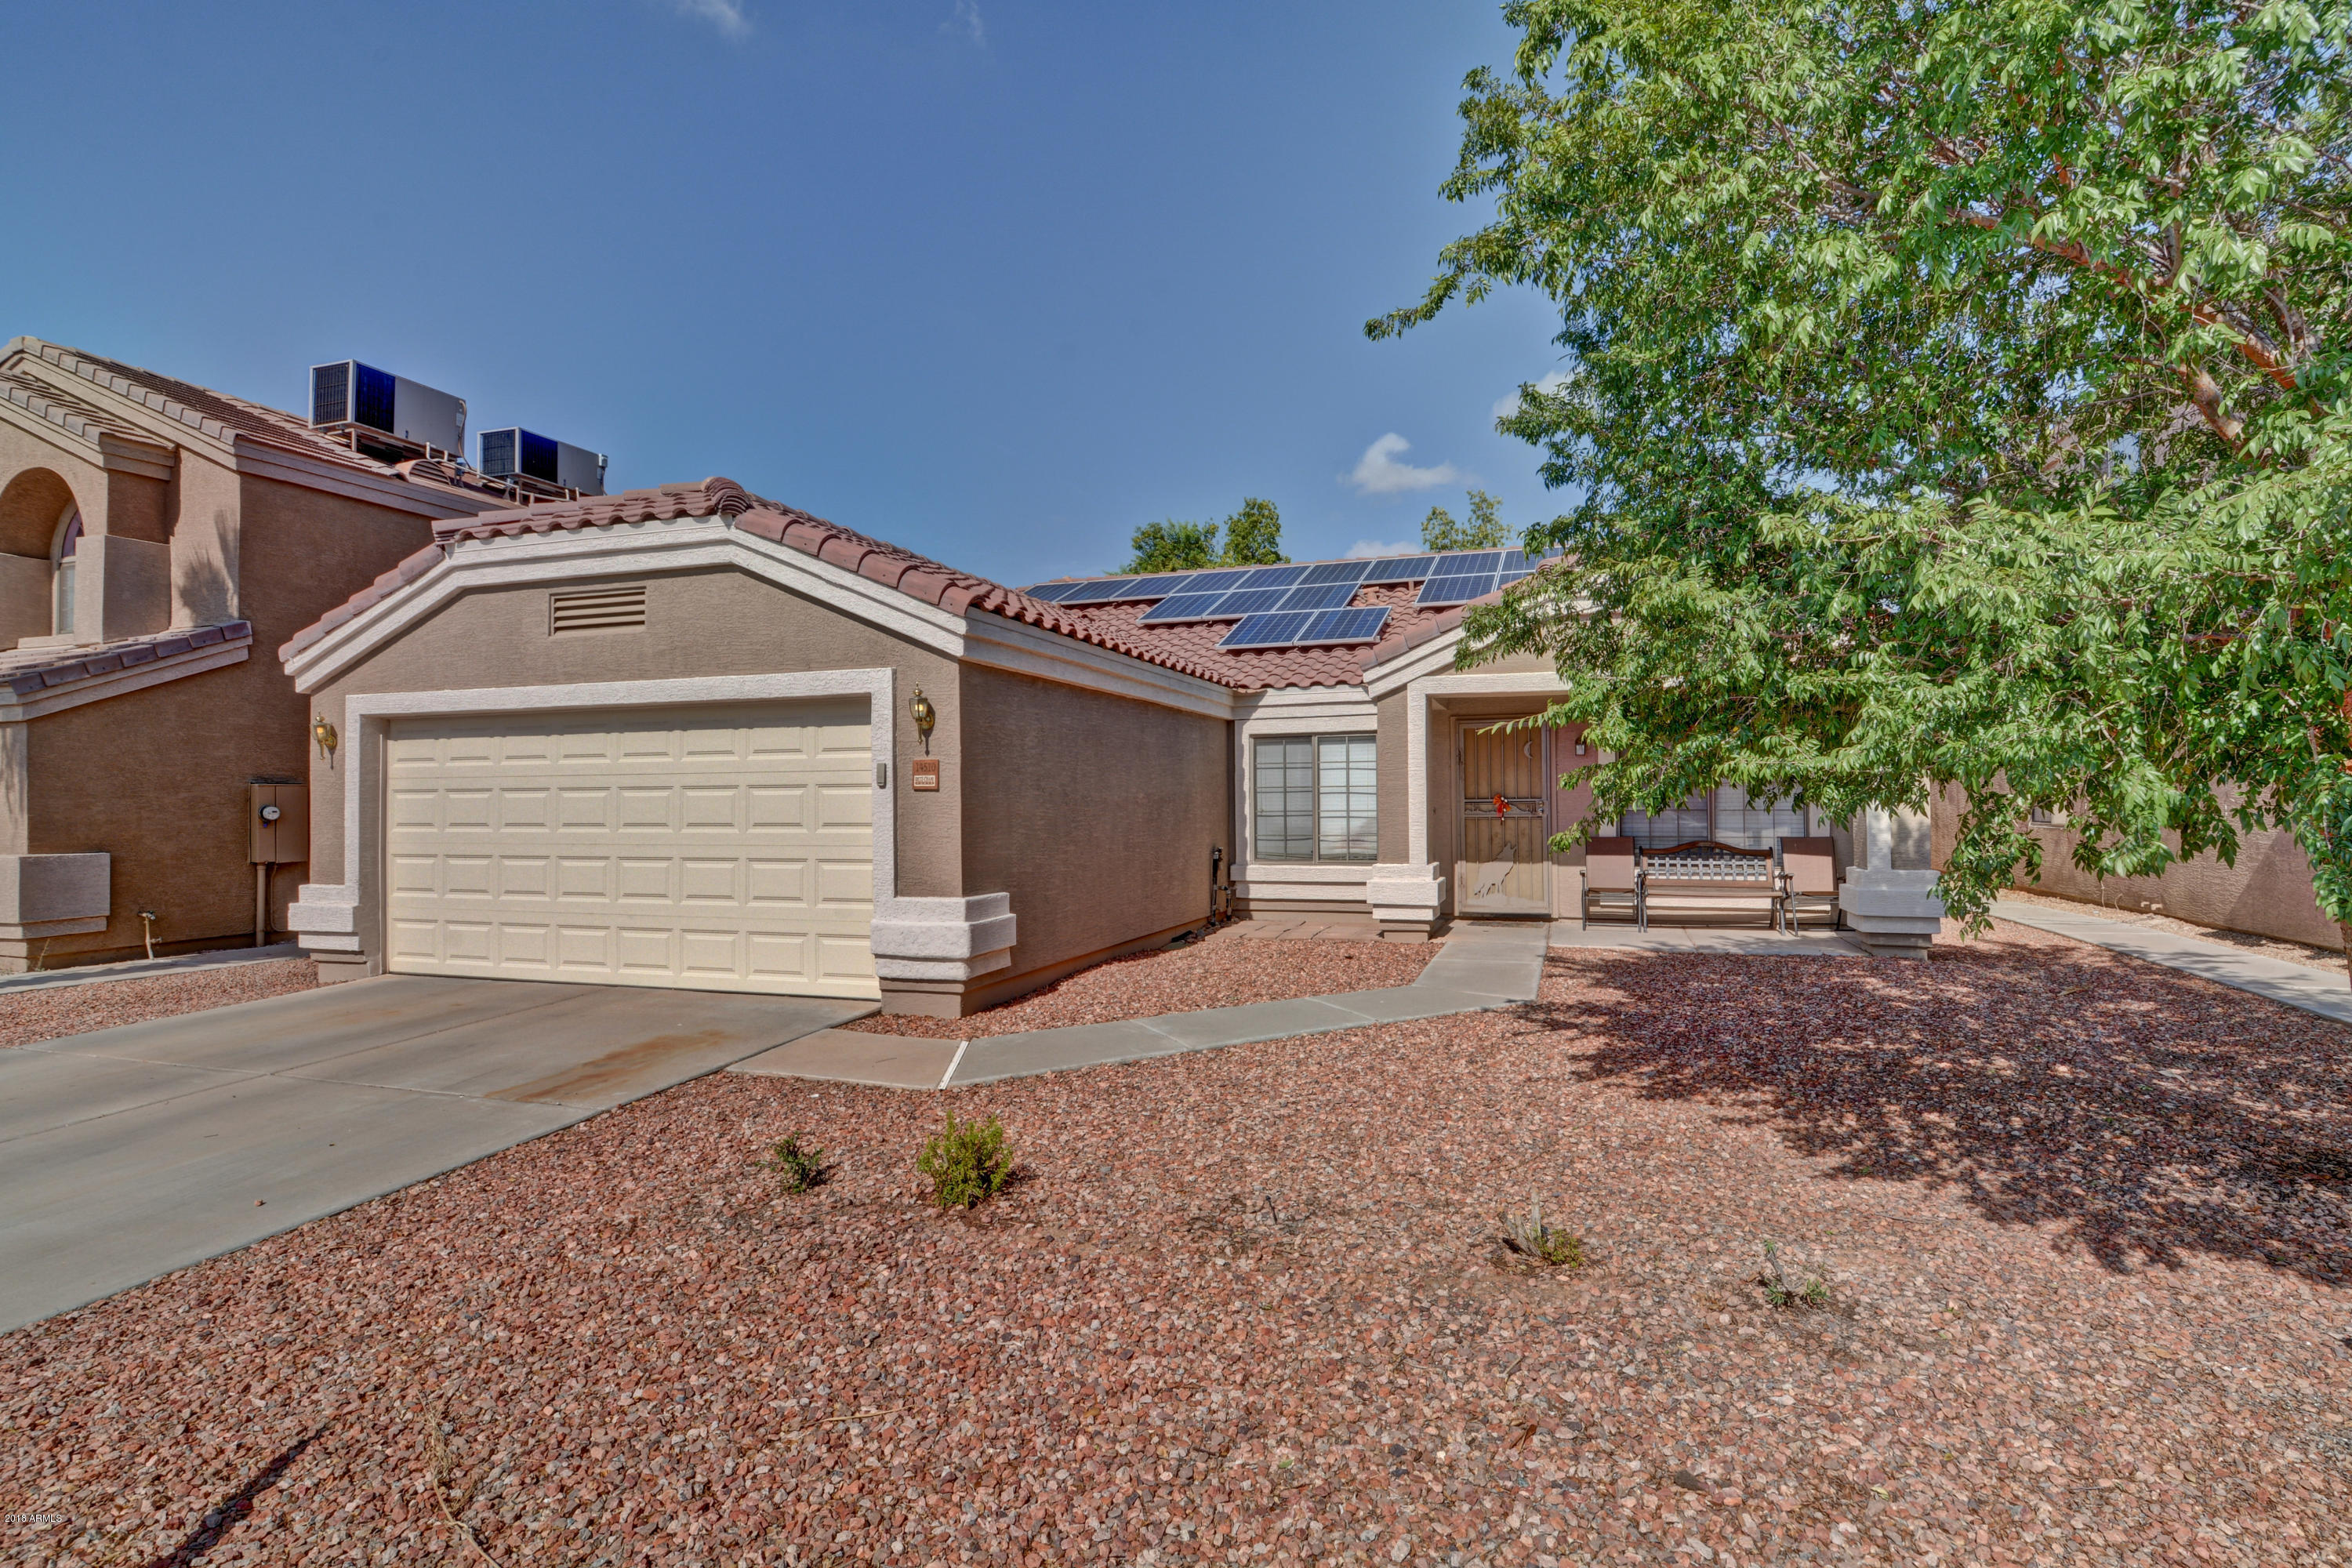 Photo for 14510 N 130th Lane, El Mirage, AZ 85335 (MLS # 5796510)